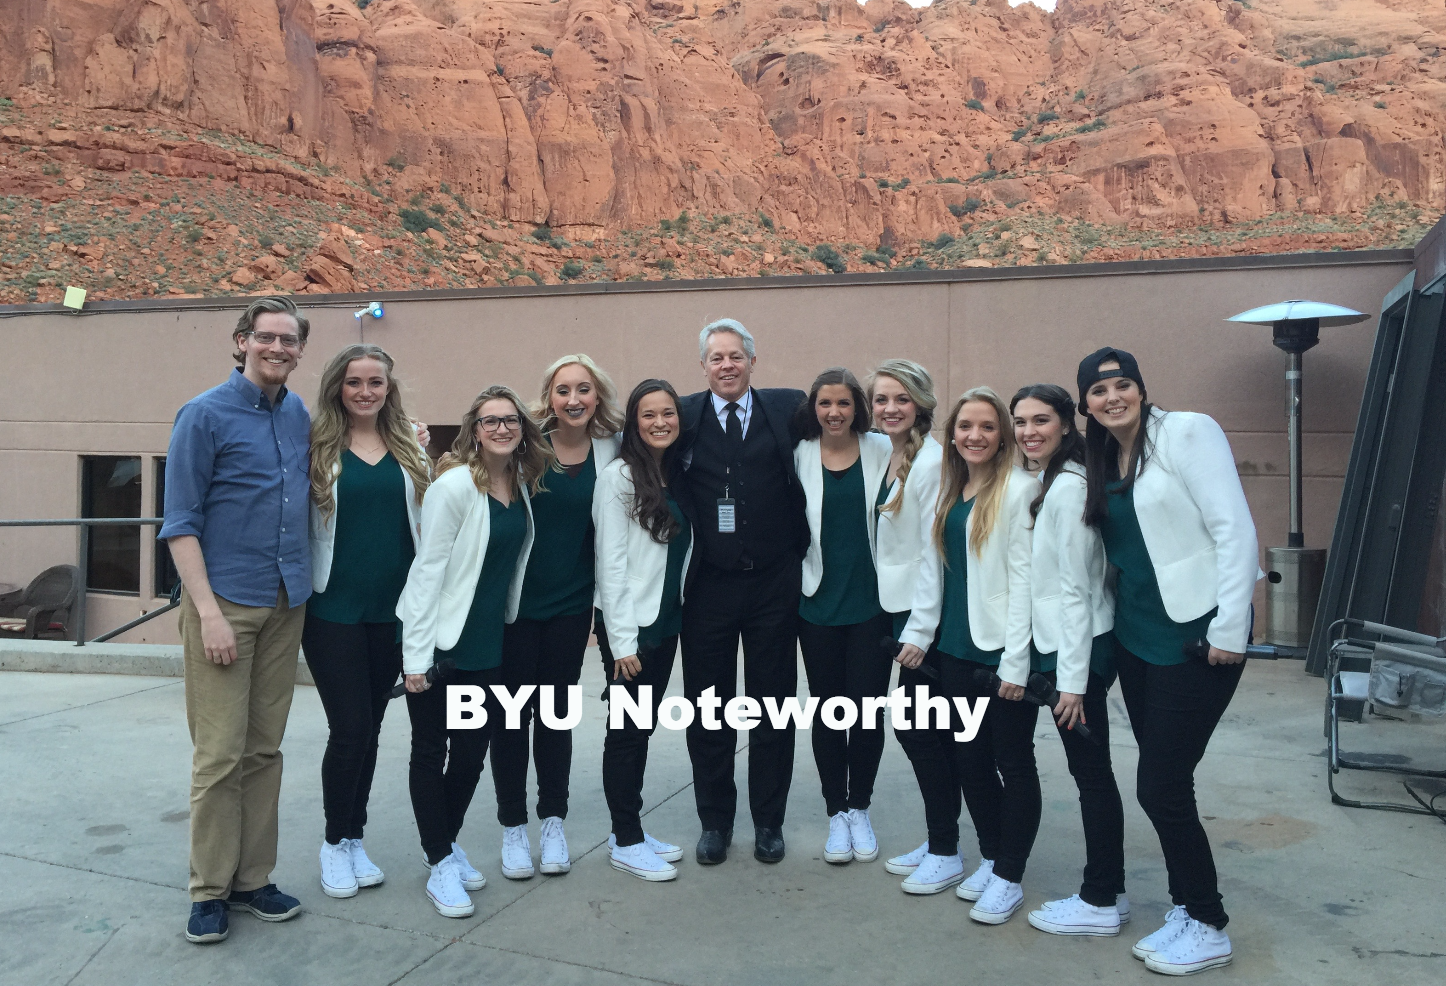 BYU Noteworthy 03262016_edited